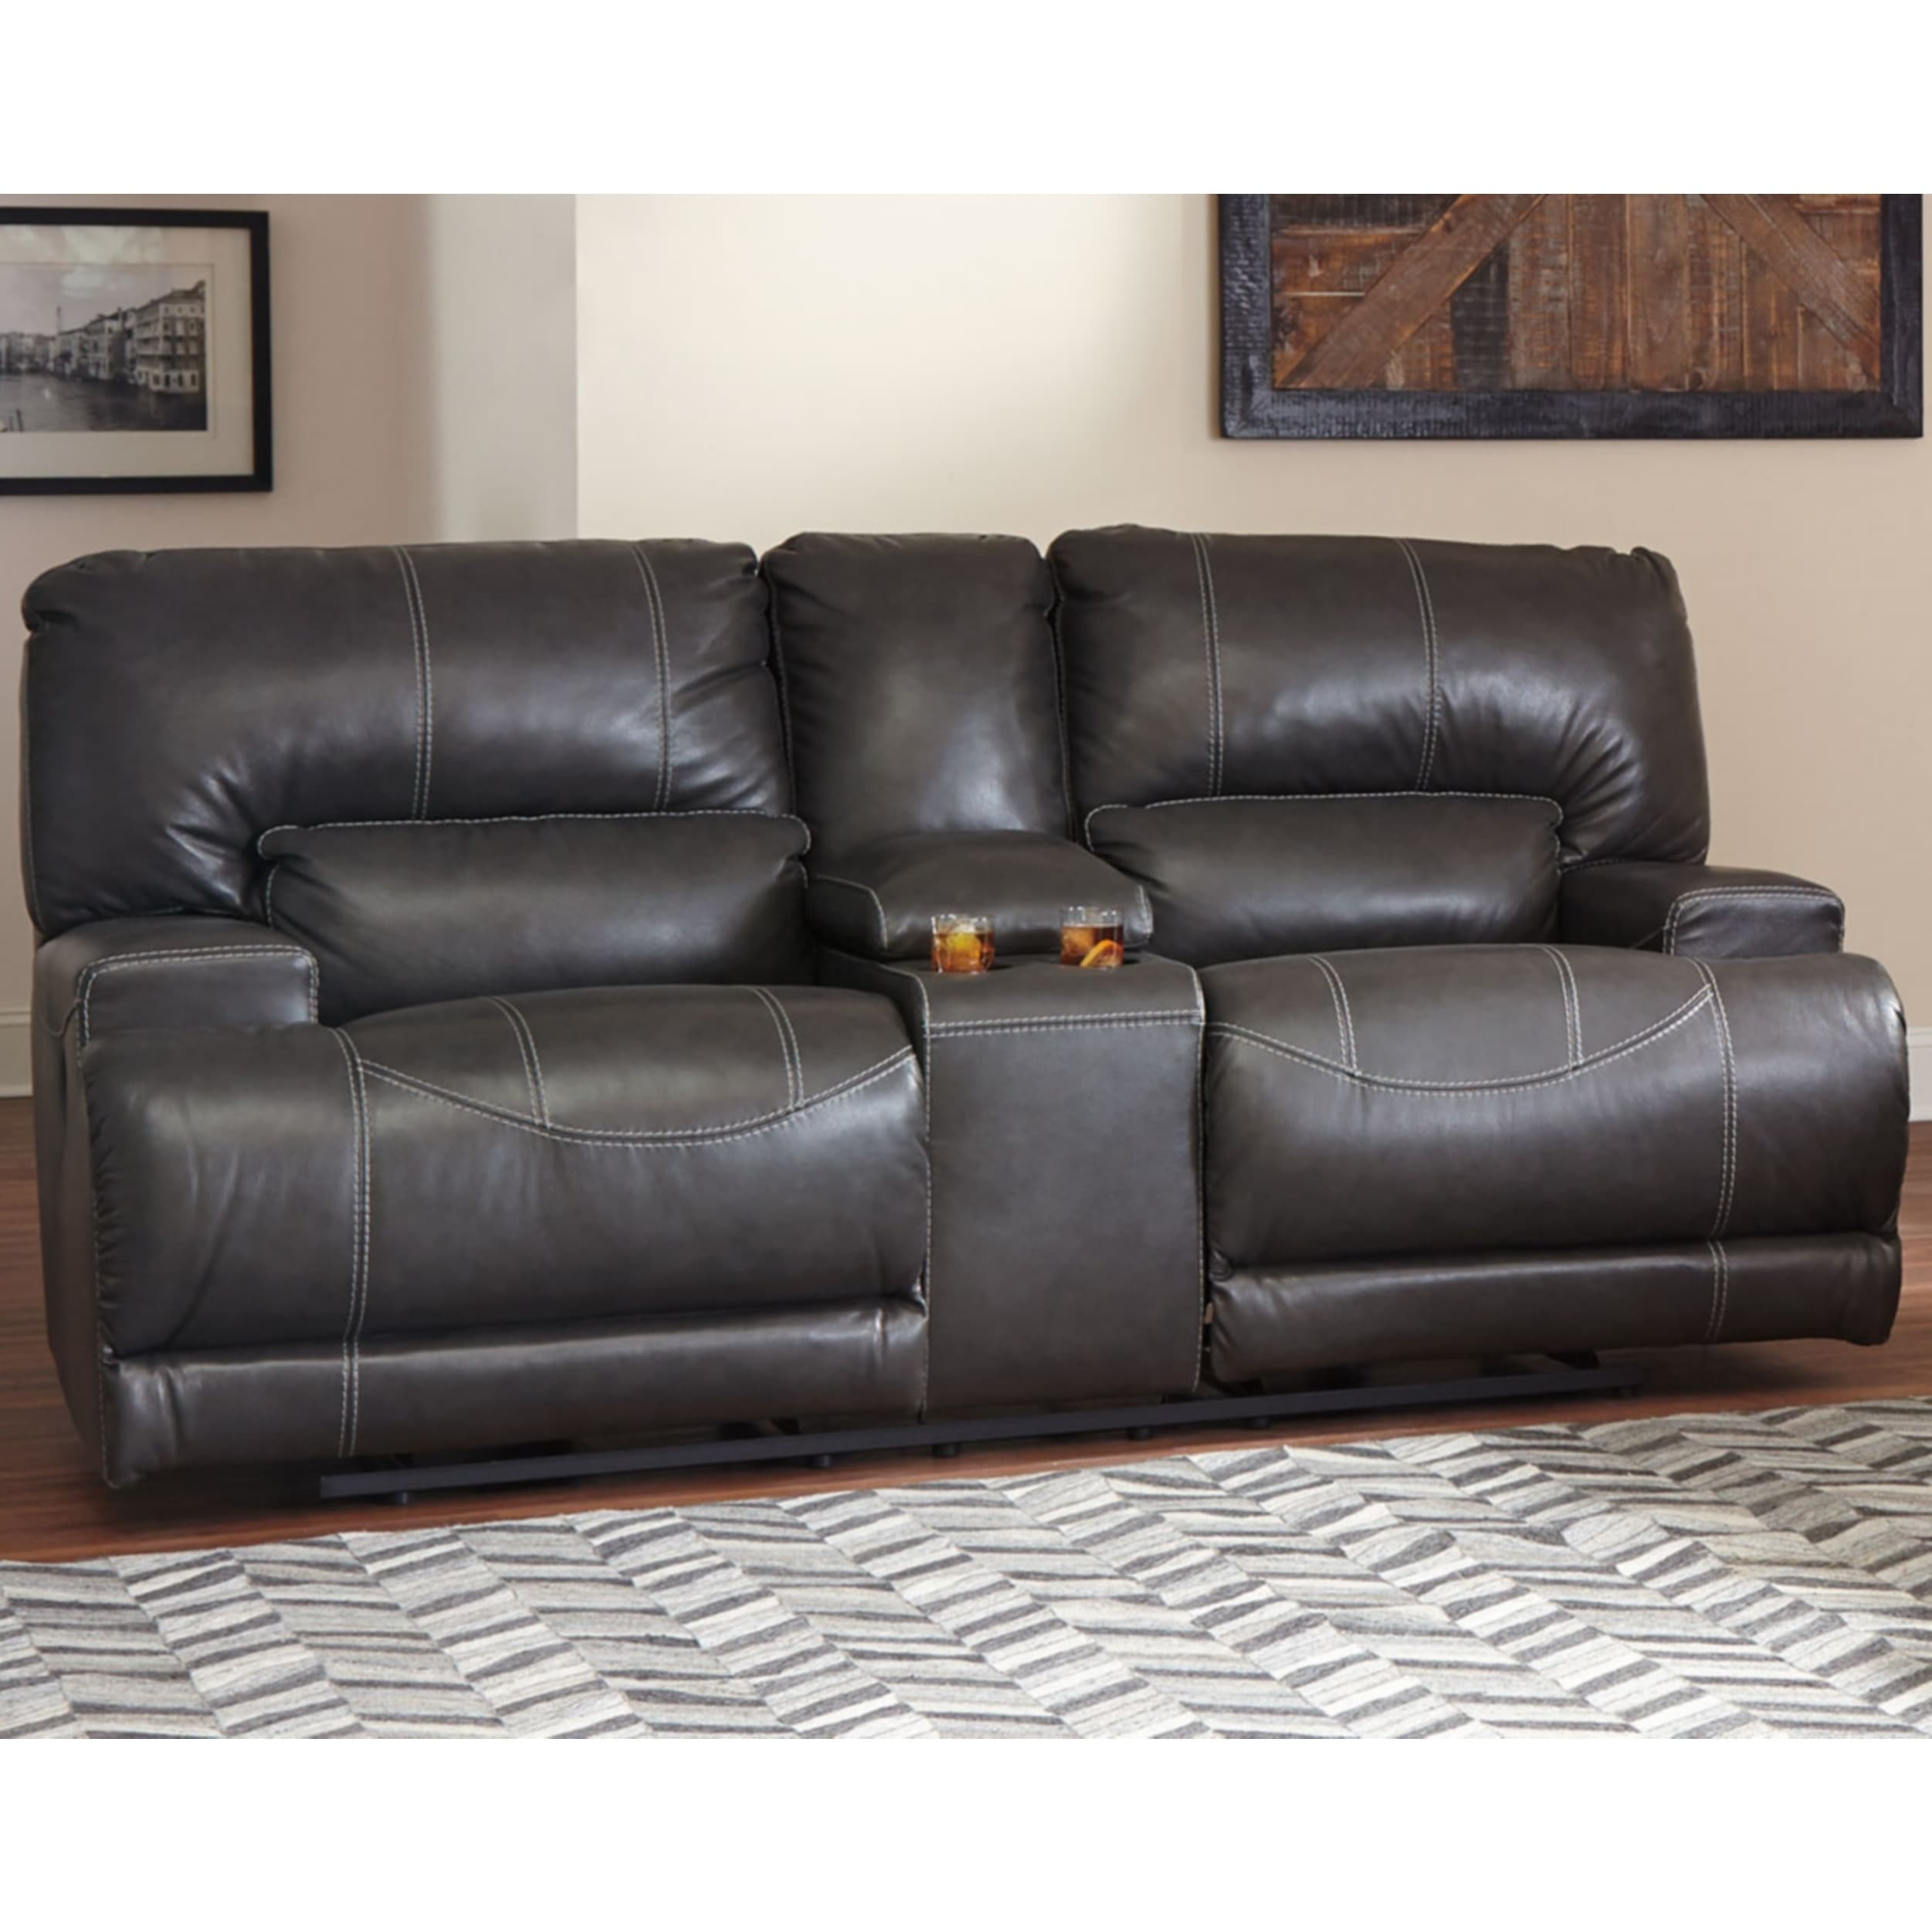 Pleasant Mccaskill Power Reclining Loveseat With Console Gray Pabps2019 Chair Design Images Pabps2019Com